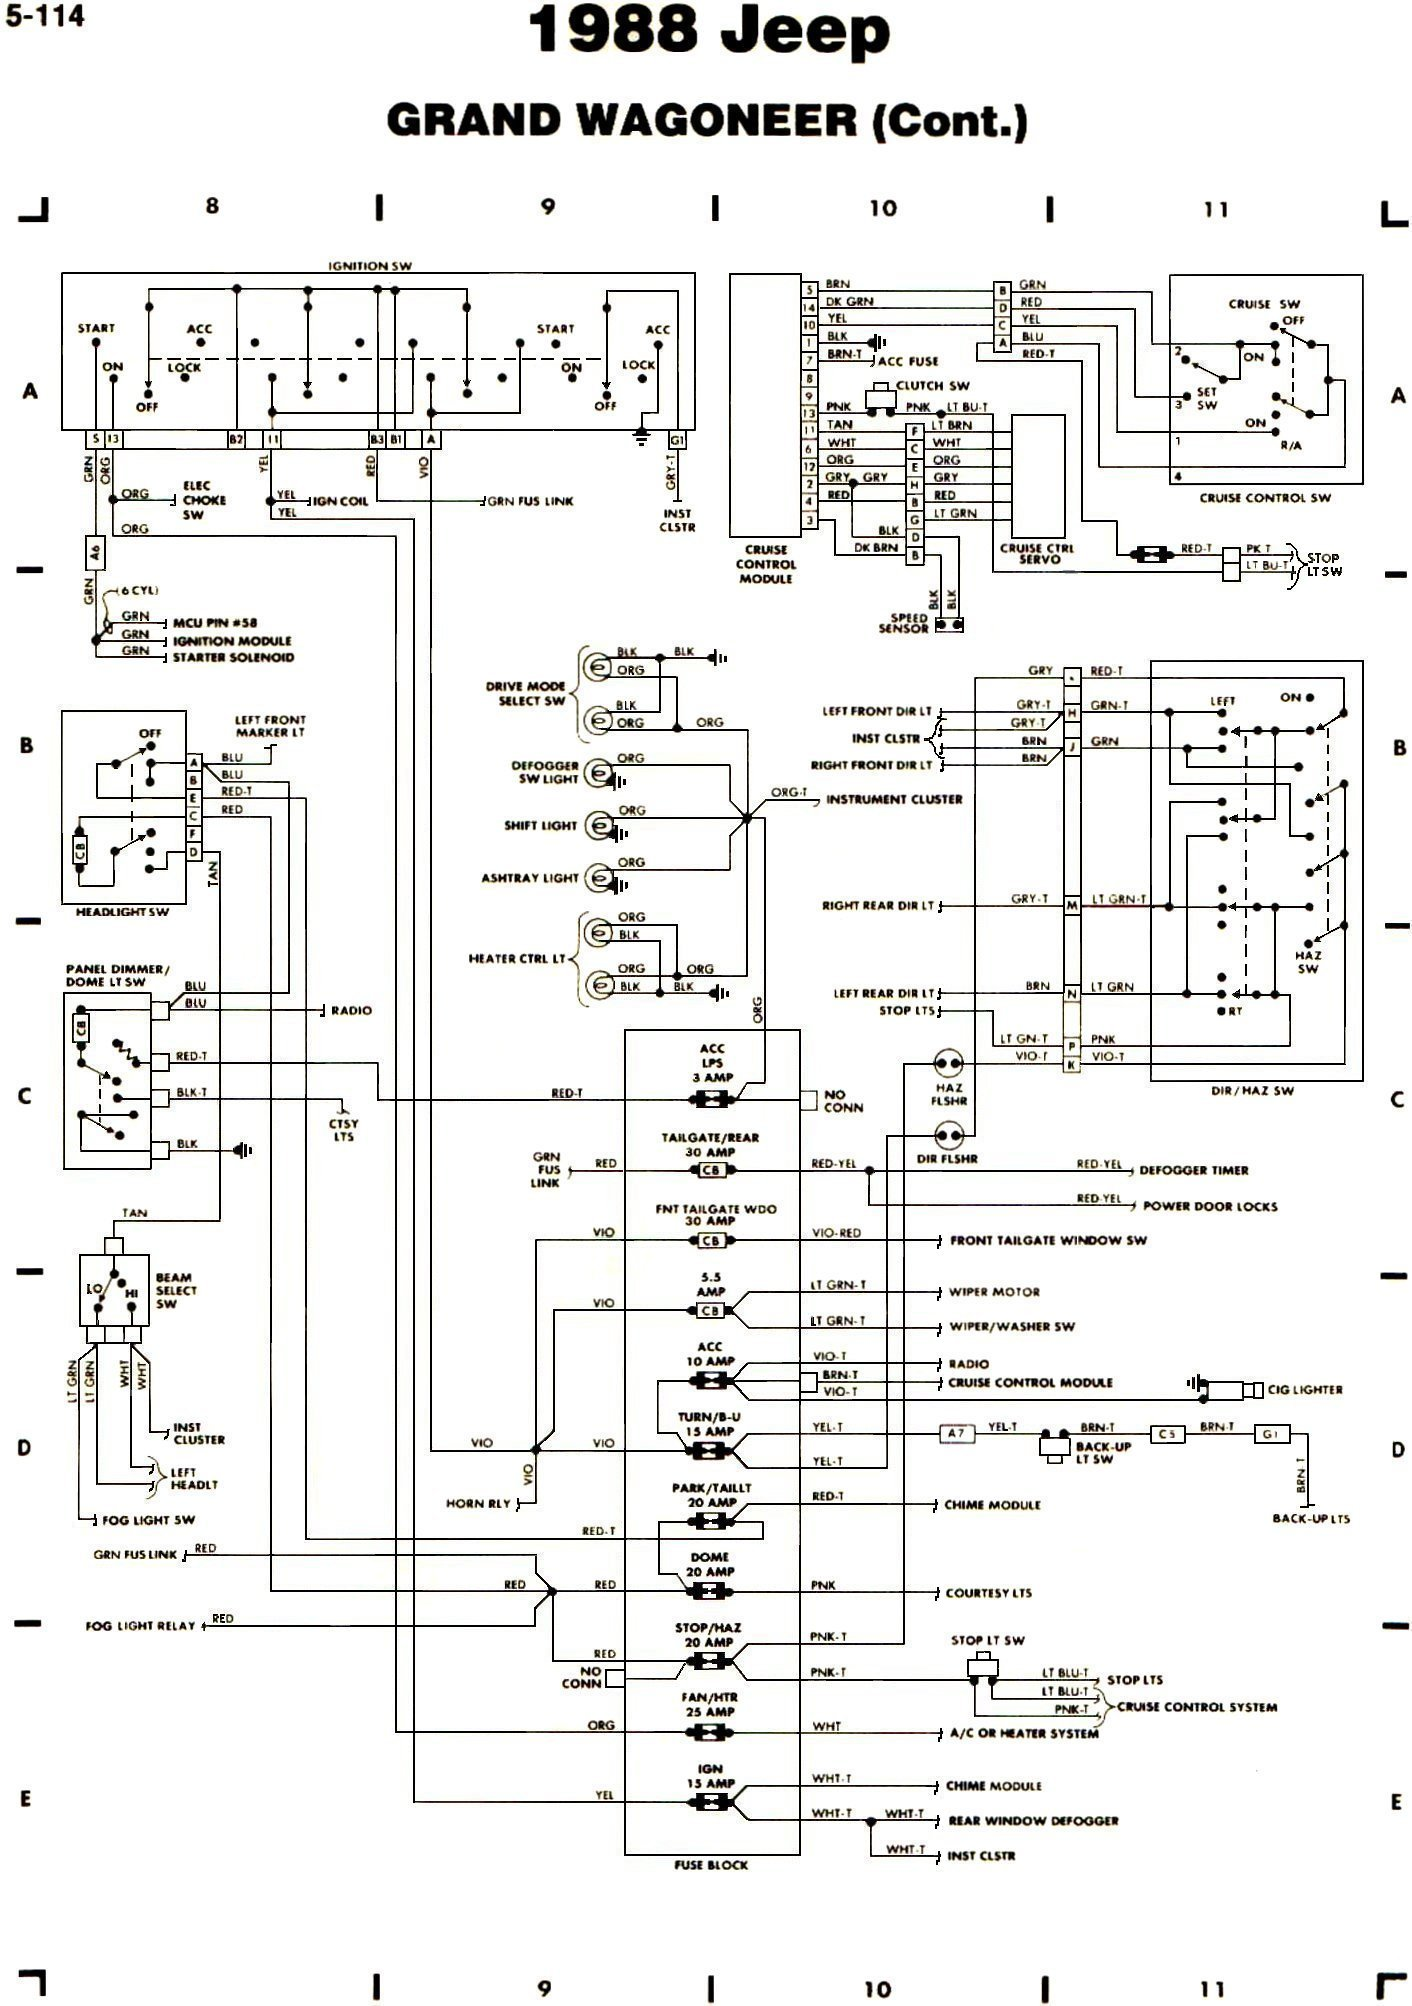 JRoIVI on tcm wiring diagram